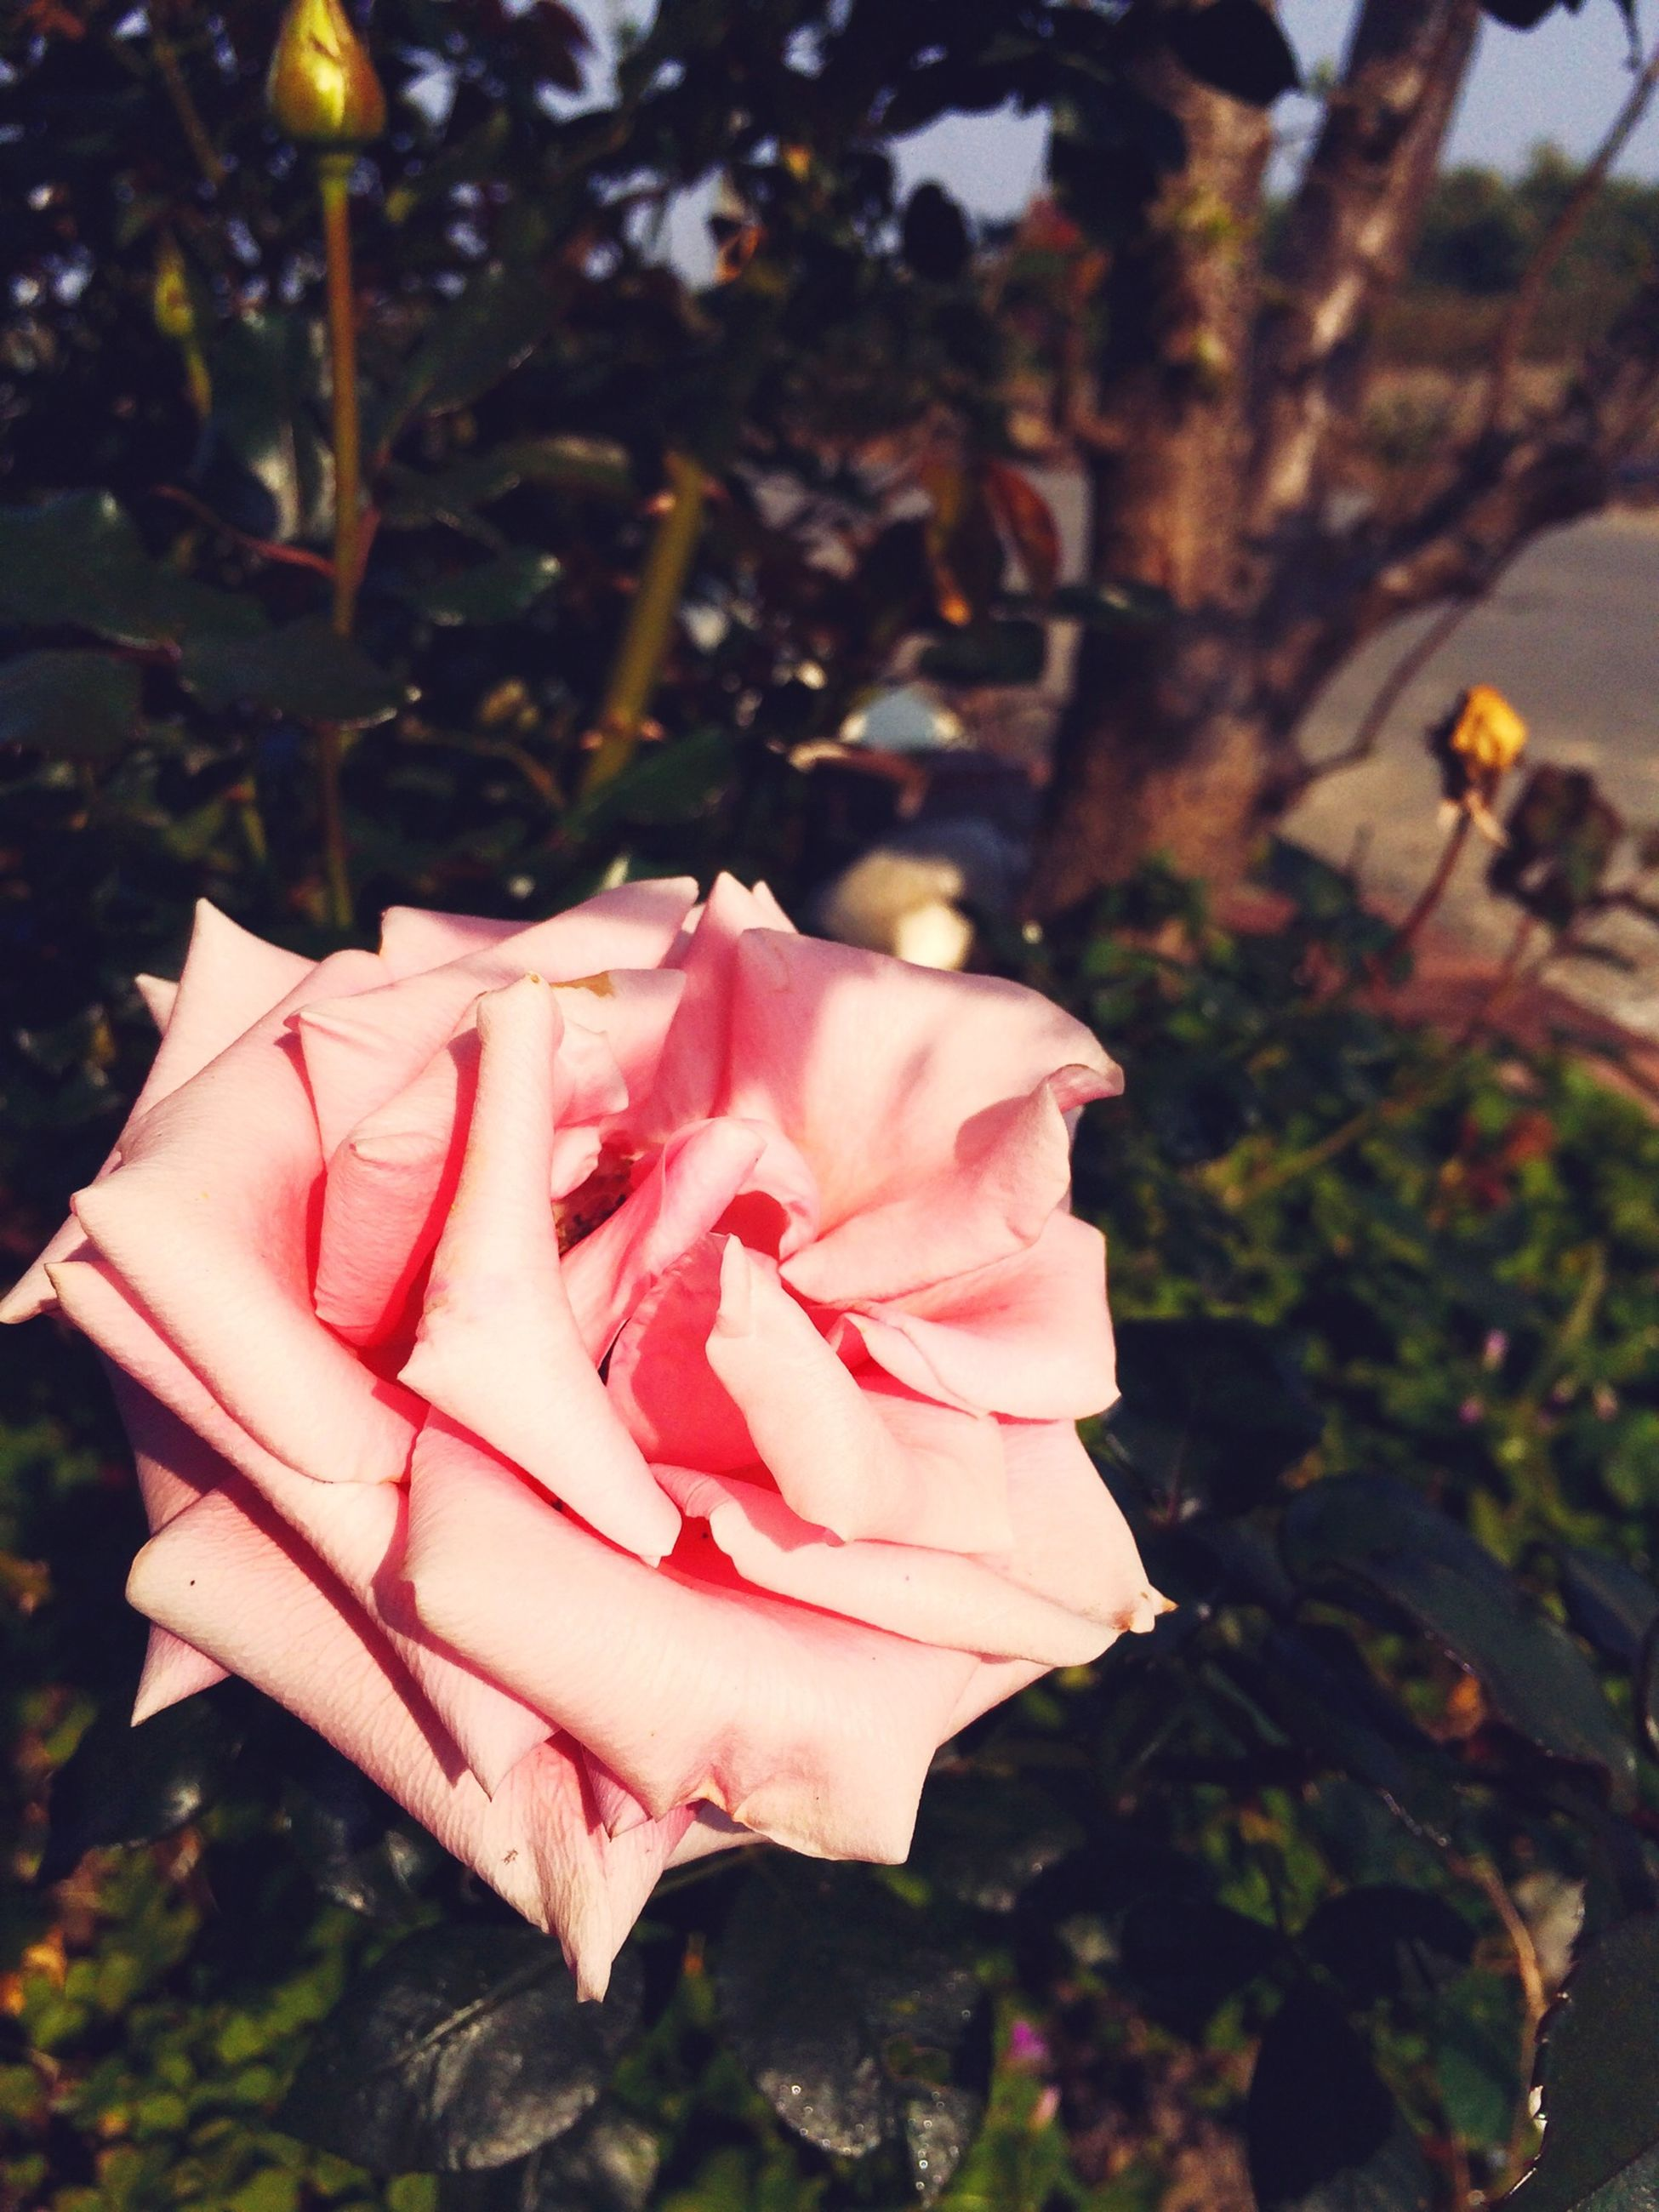 petal, rose - flower, flower, fragility, flower head, freshness, close-up, focus on foreground, growth, pink color, beauty in nature, nature, leaf, single flower, rose, blooming, plant, outdoors, day, pink